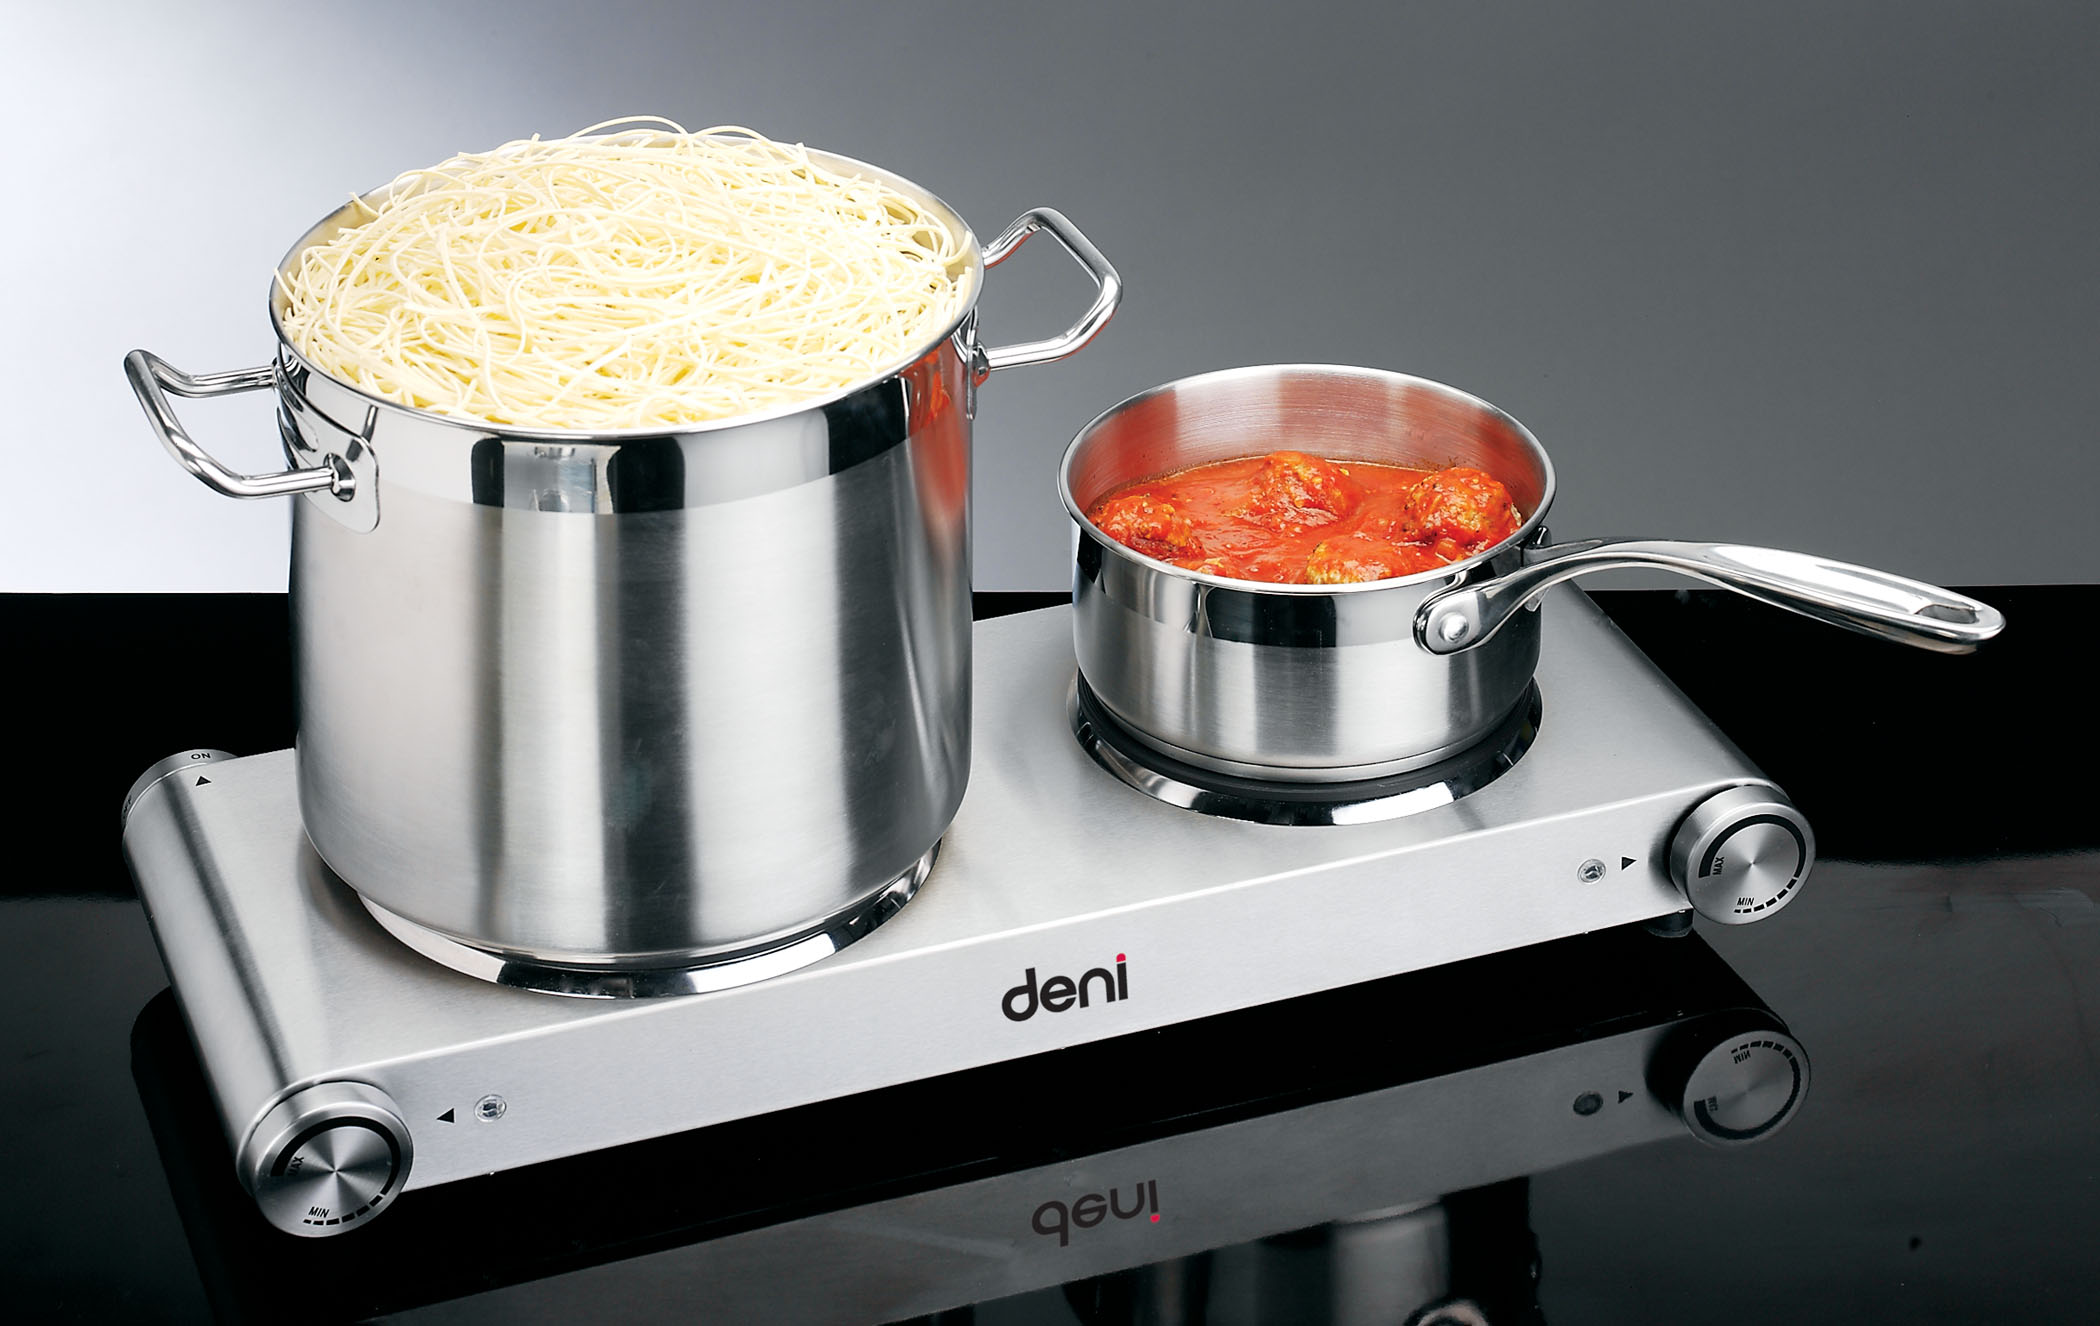 Deni 16320 table top burner  double plate